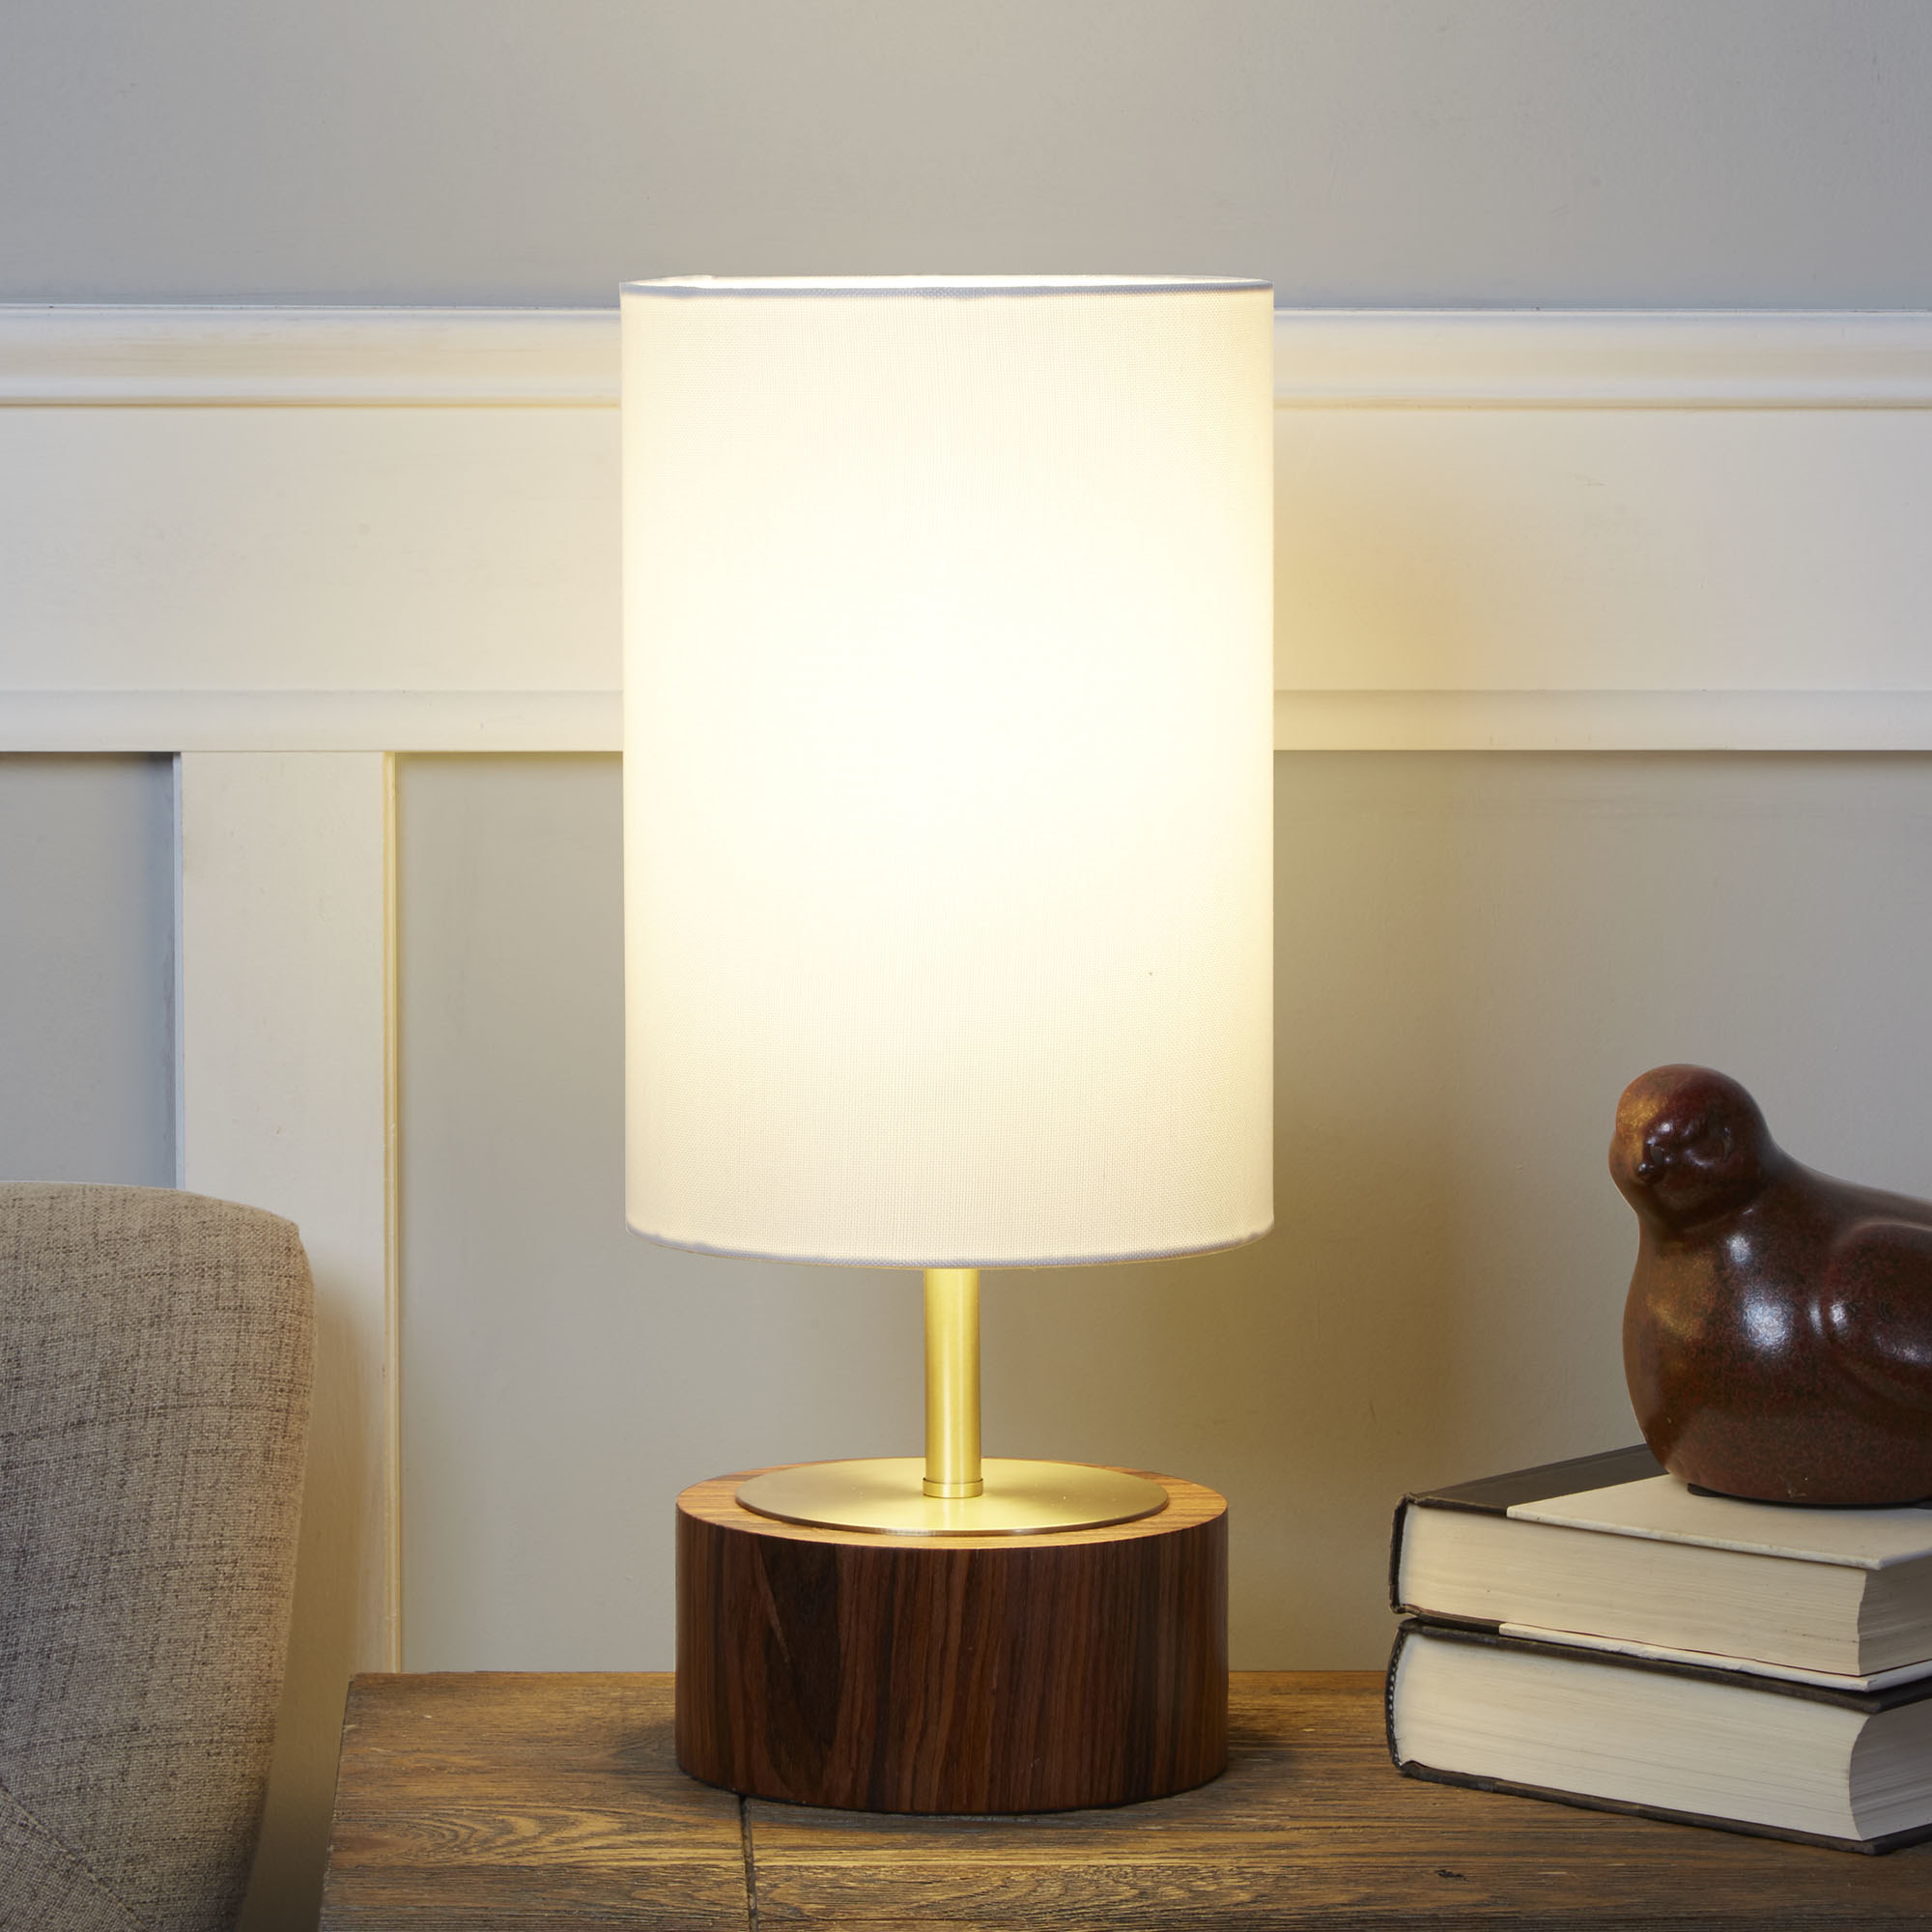 A tall round lamp with a wooden base, gold metal stem, and off-white lampshade